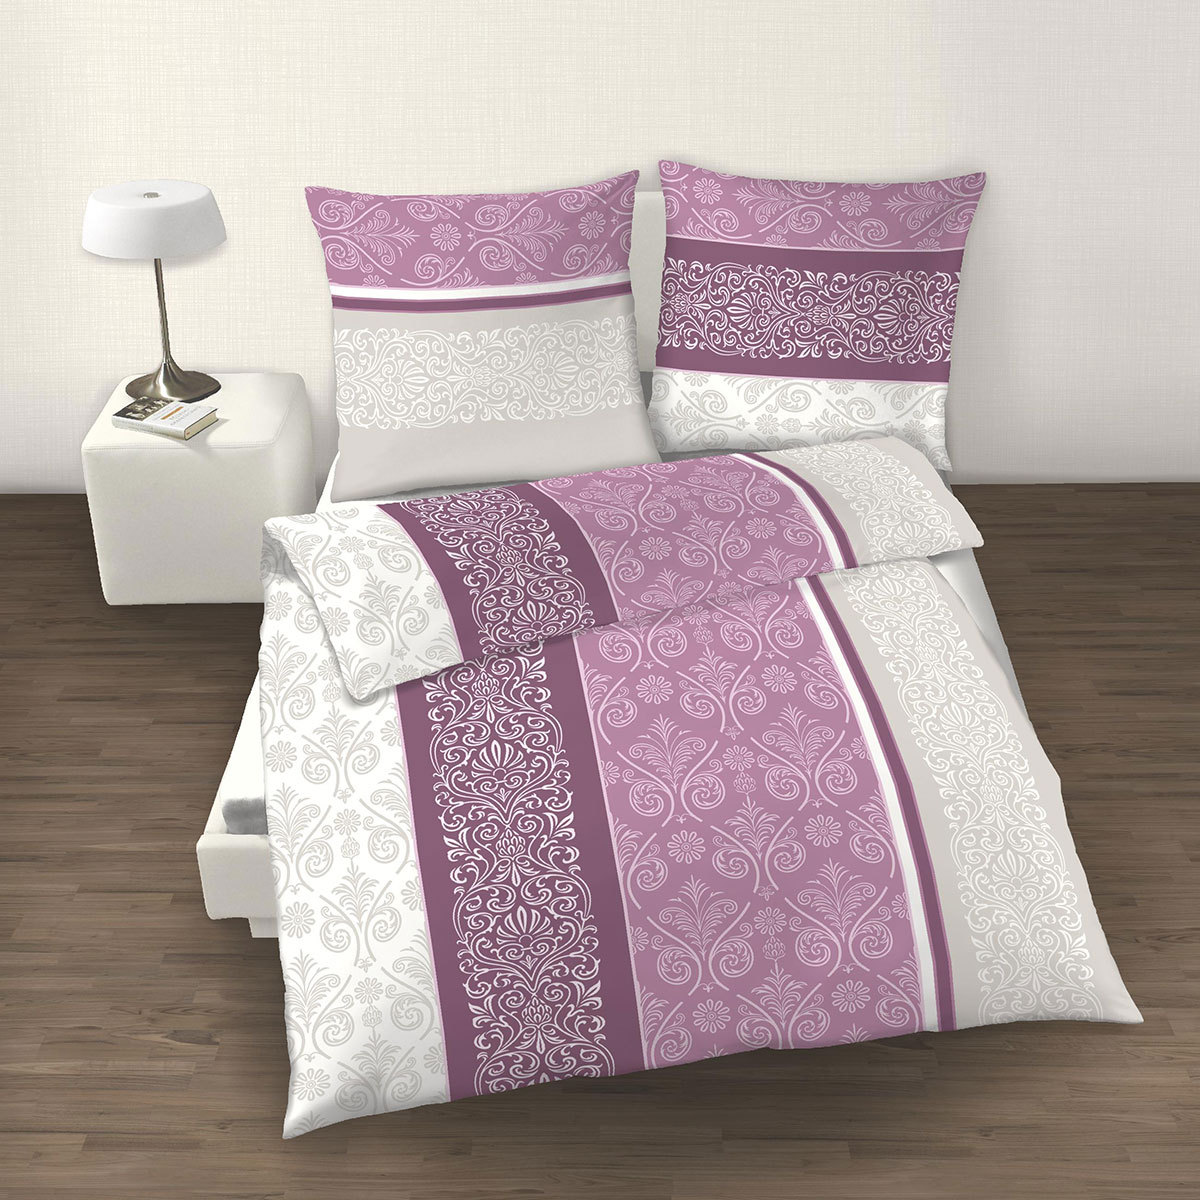 dobnig biber bettw sche paisley malve g nstig online kaufen bei bettwaren shop. Black Bedroom Furniture Sets. Home Design Ideas